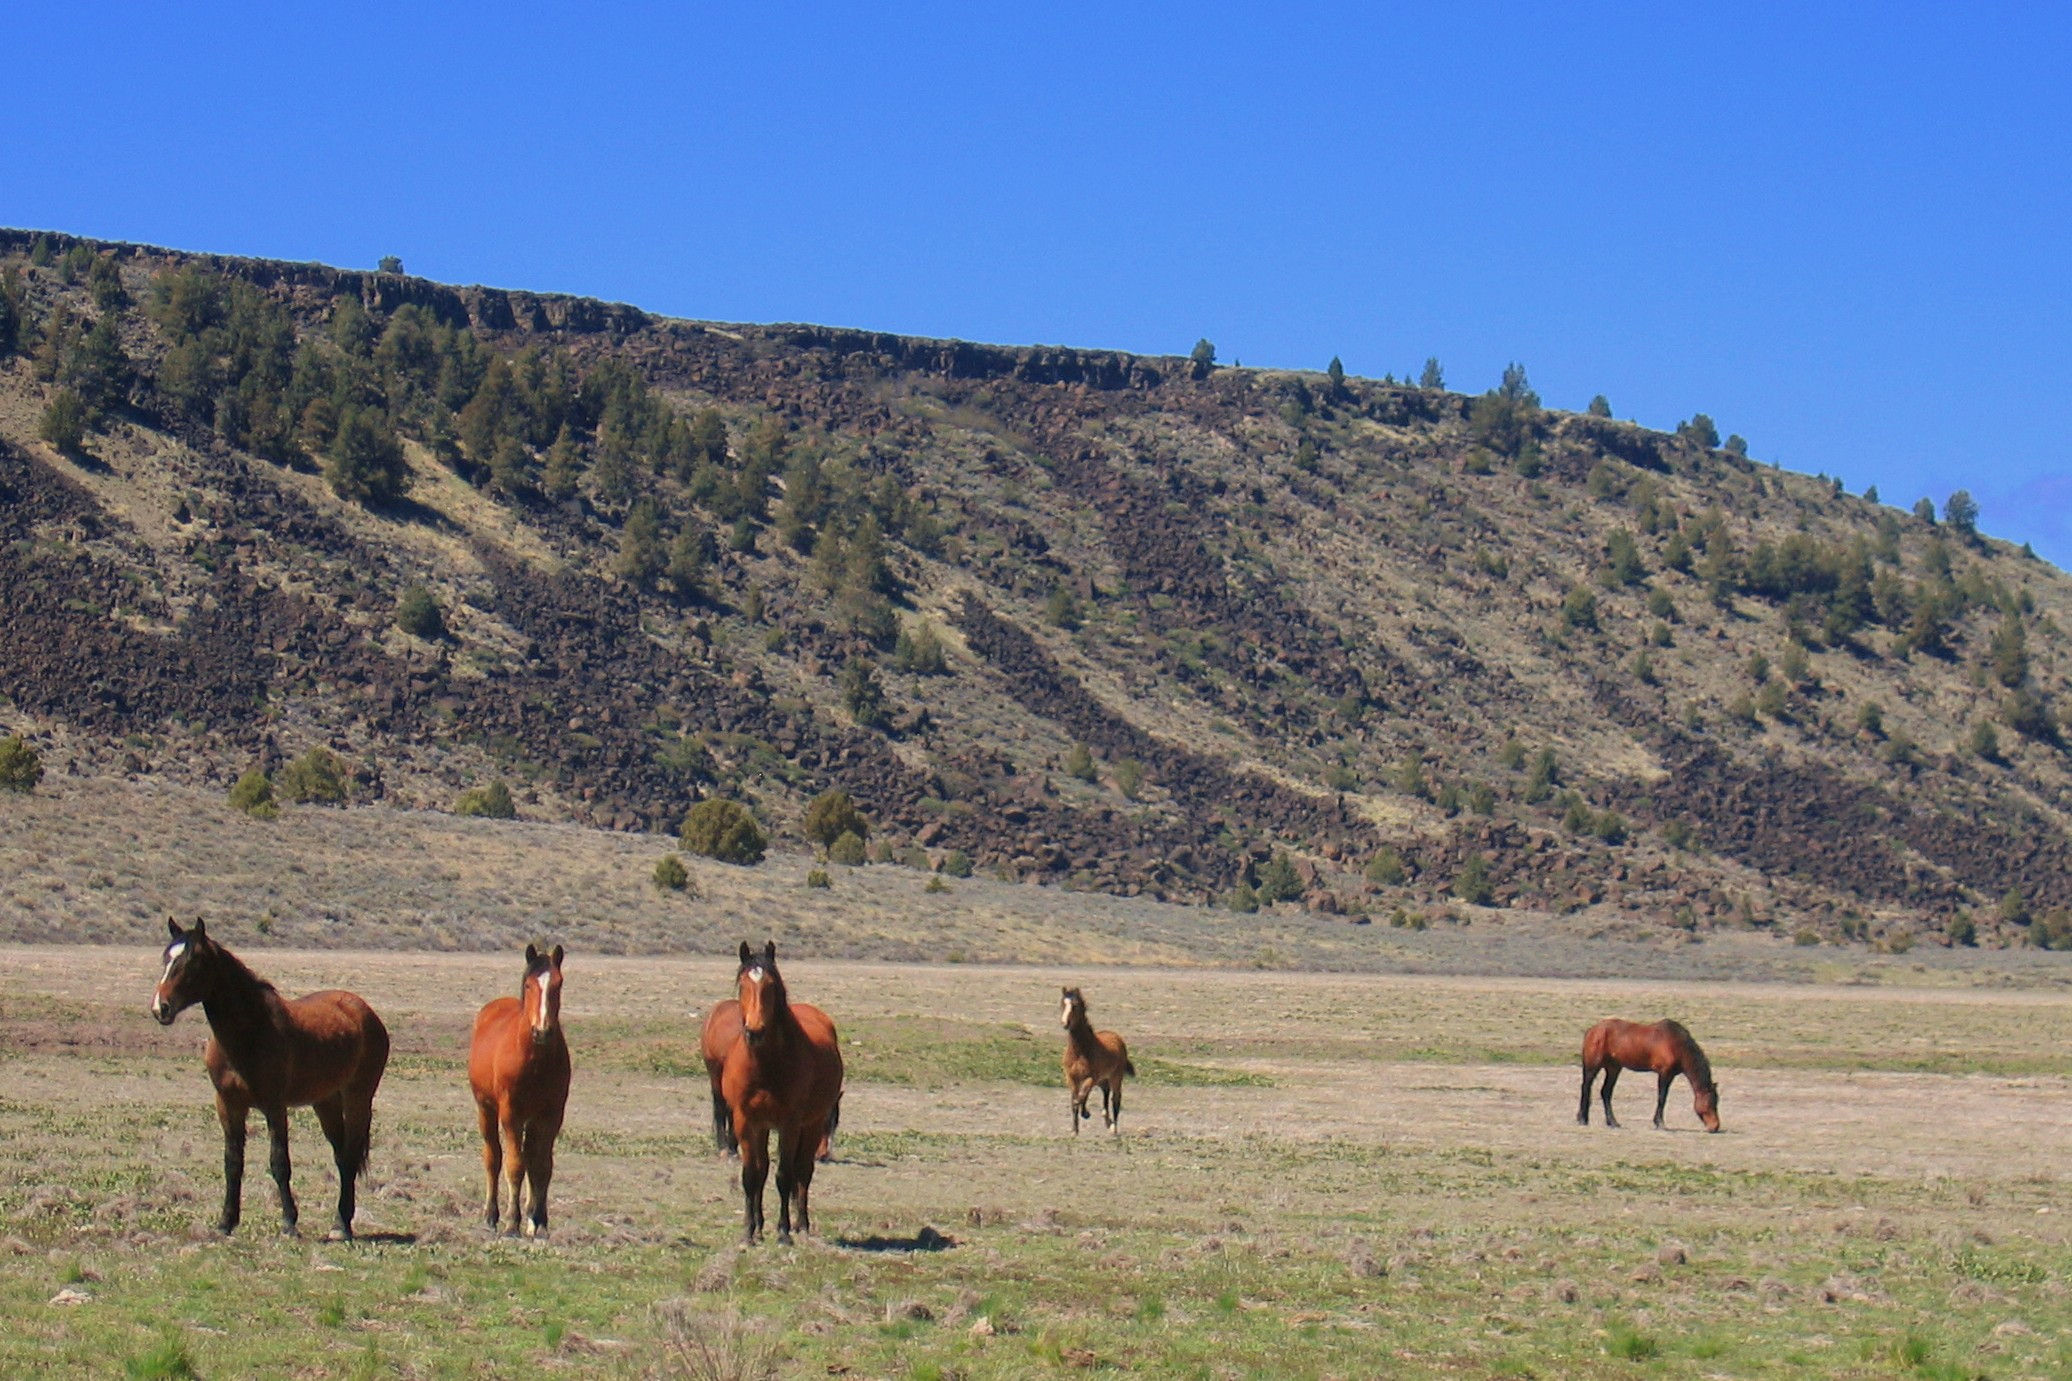 Small herd of Wild horses on late summer pasture.